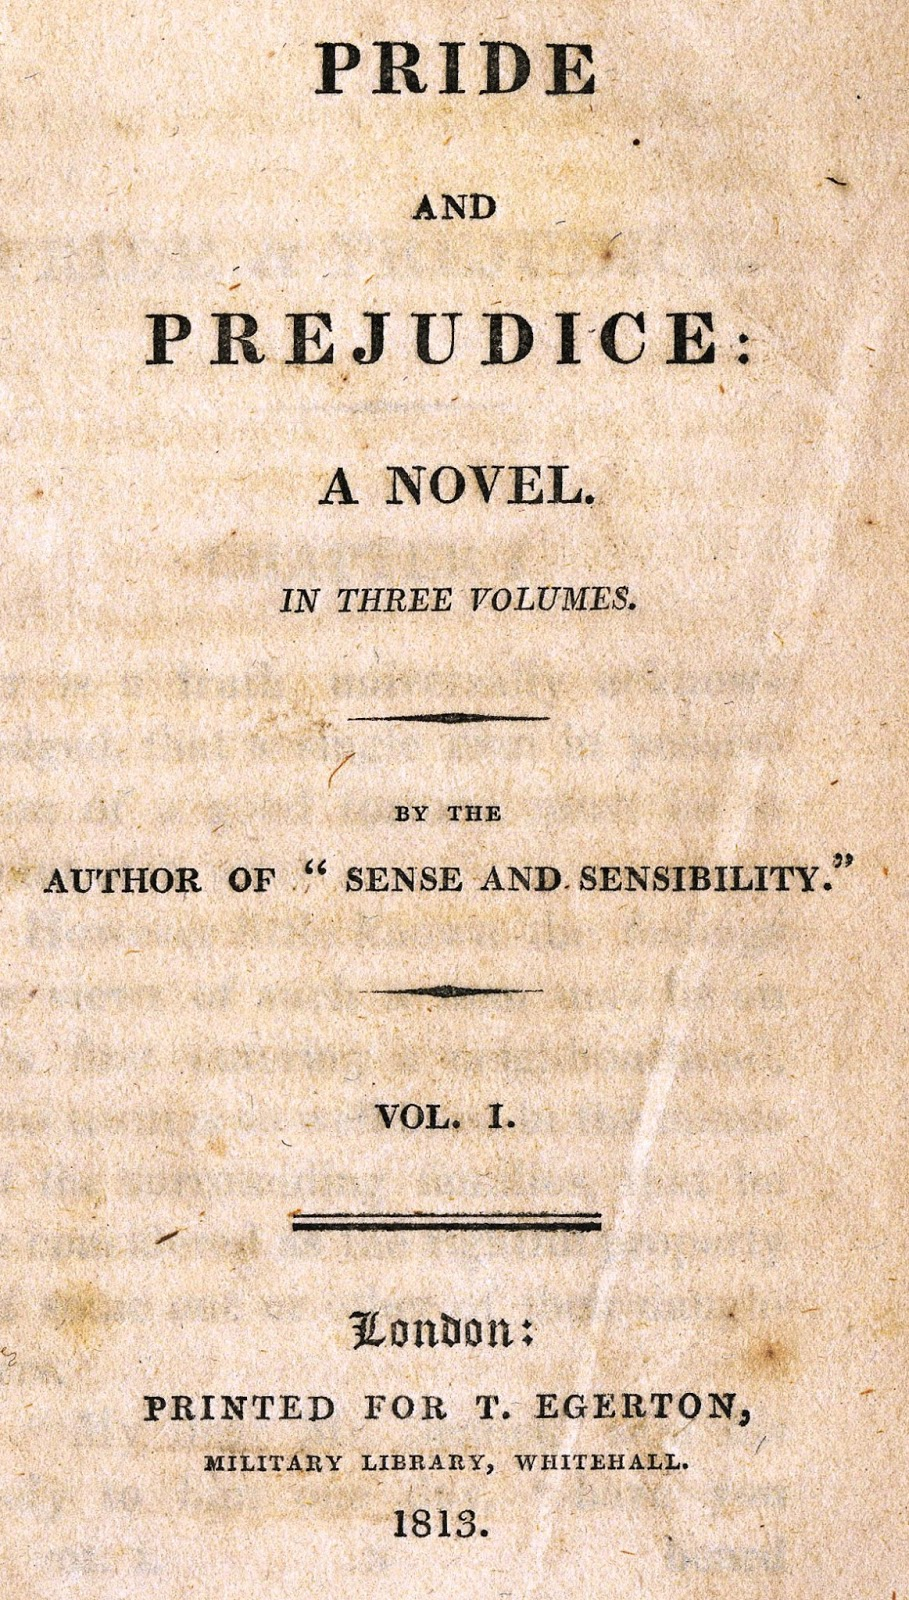 pride and prejudice turns two hundred years old today victorian musings